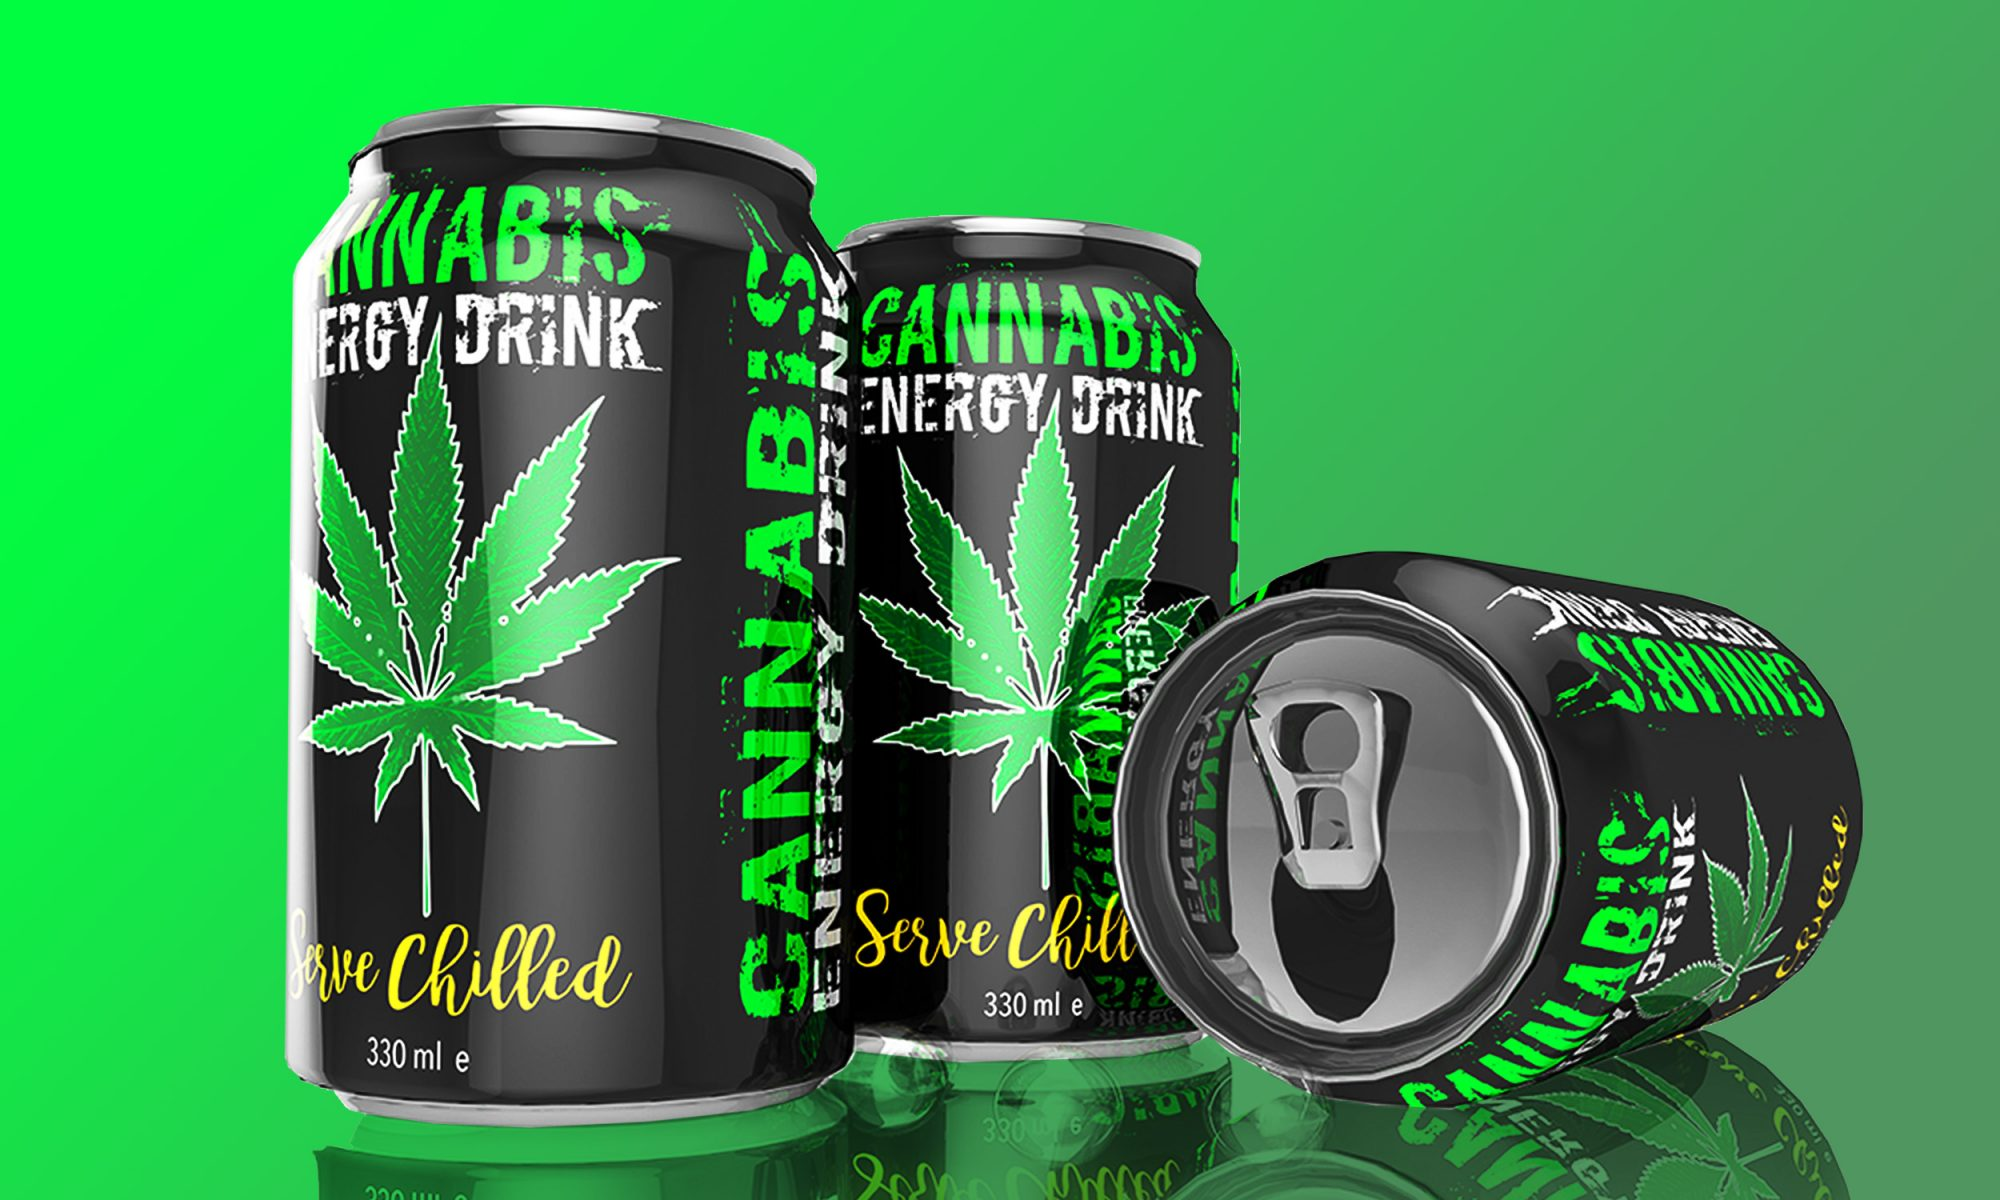 EC: This Liquor Company Plans to Make Weed-Infused Drinks